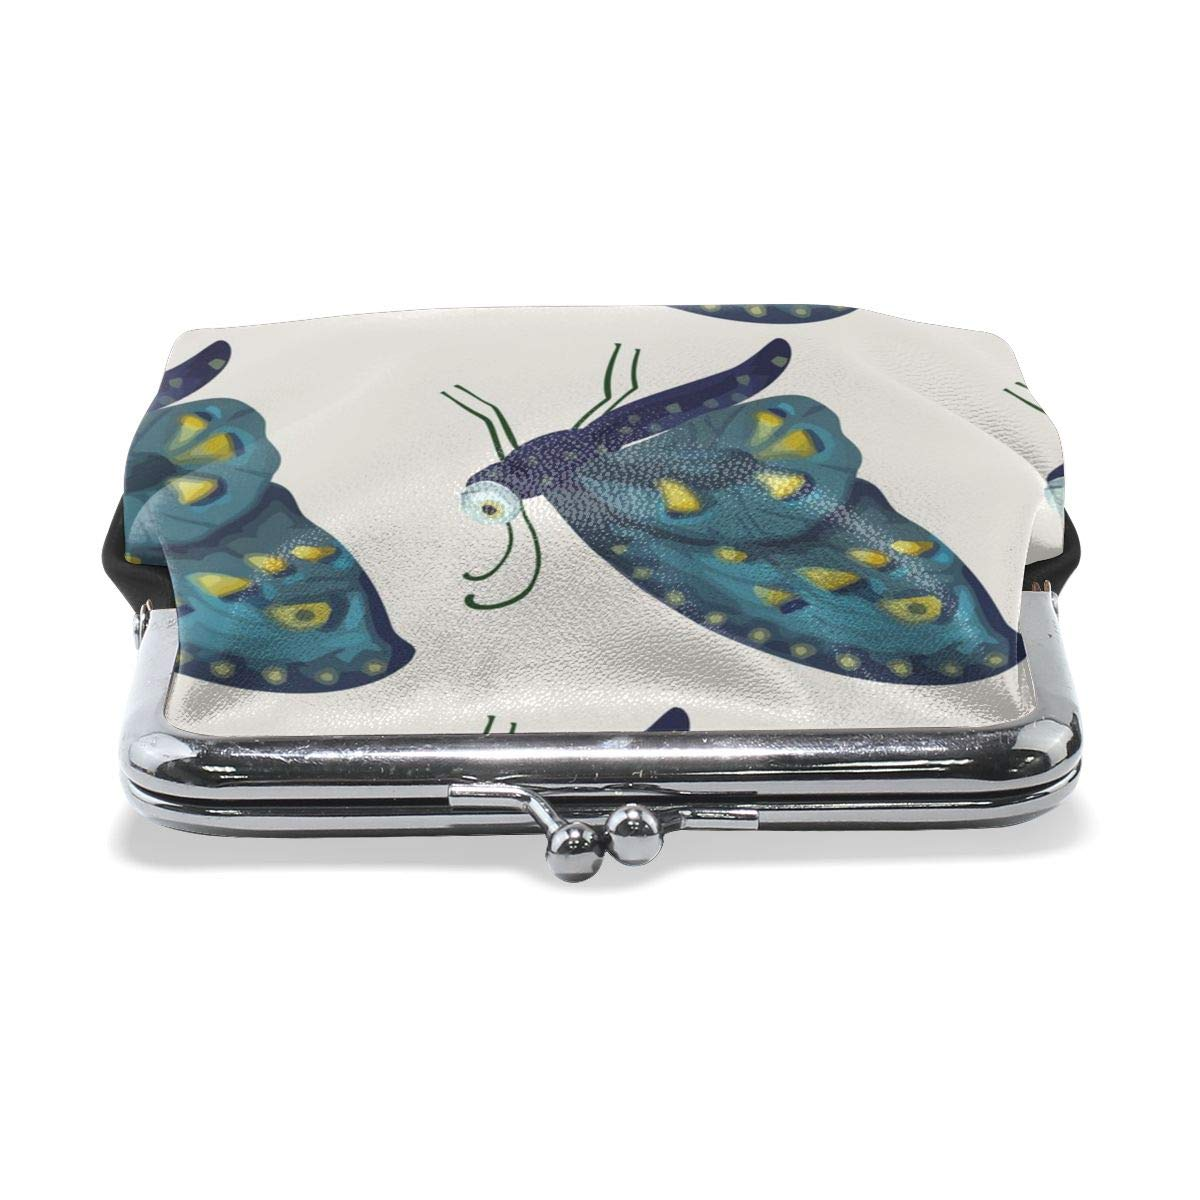 Yunshm Seamless Pattern Vith Cute 3d Insect Personalized Leather Classic Floral Coin Purse Clutch Pouch Wallet For Womens